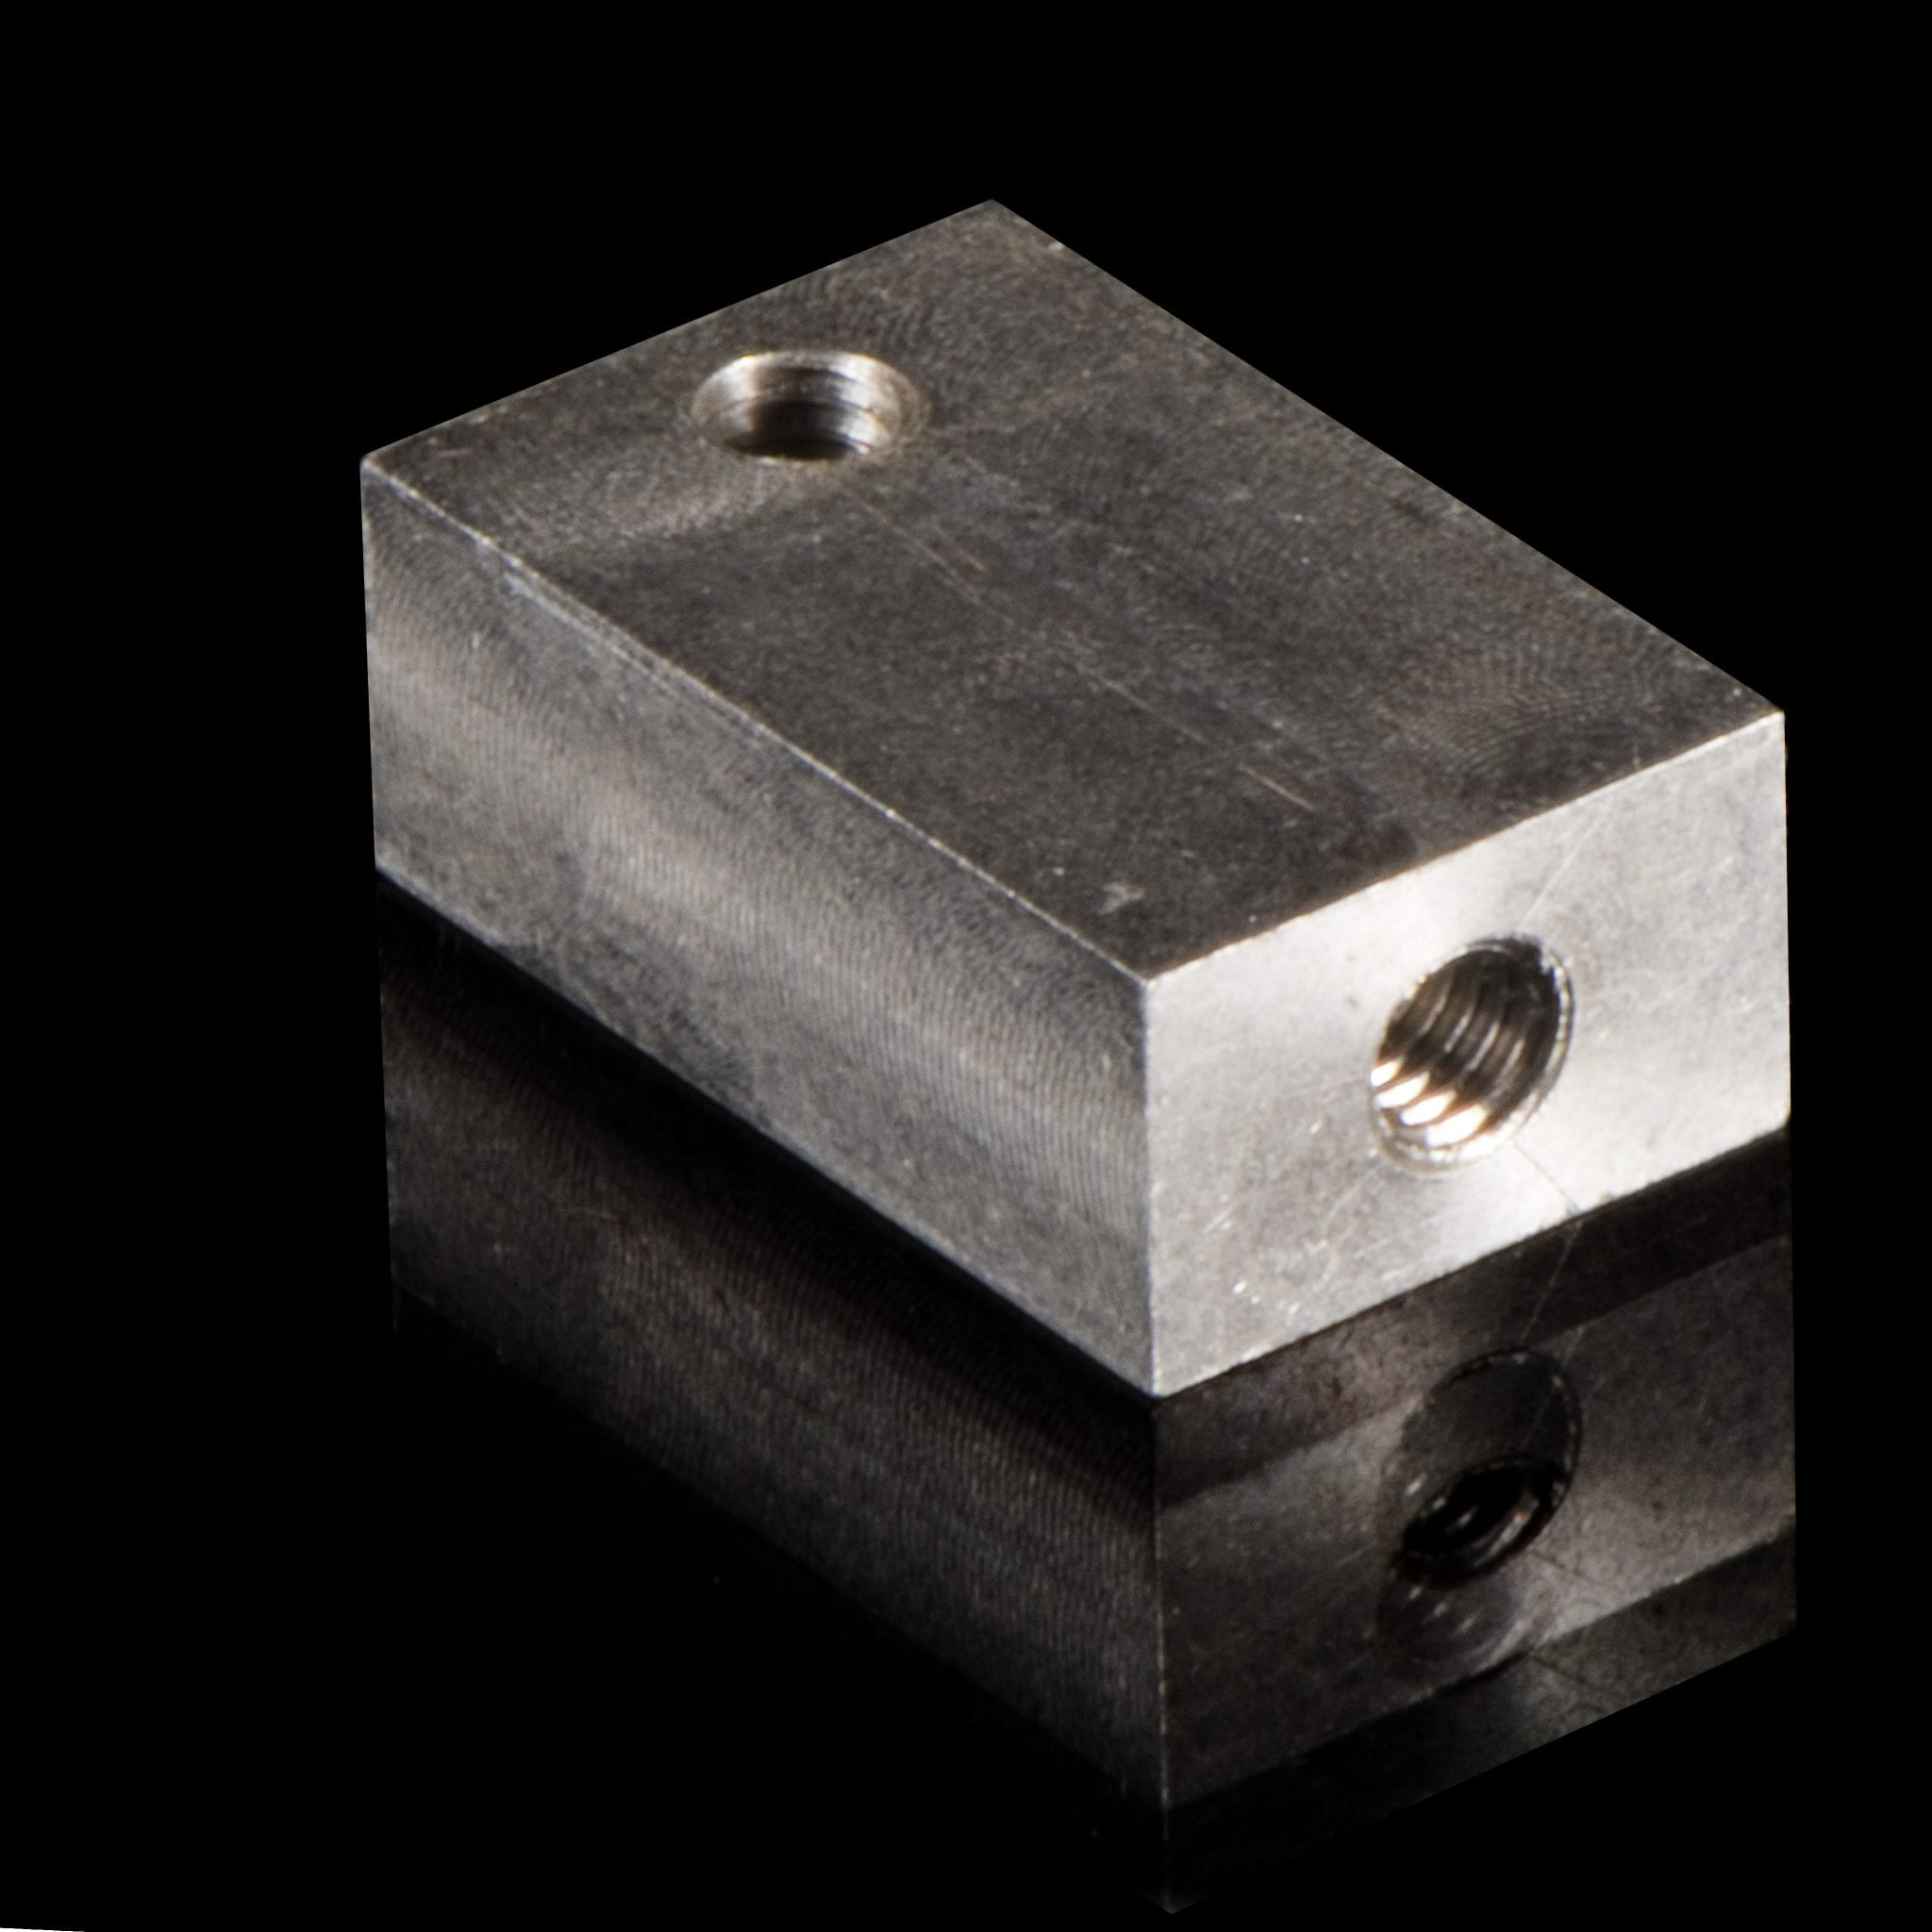 Heat Sink From A CNC Lathe